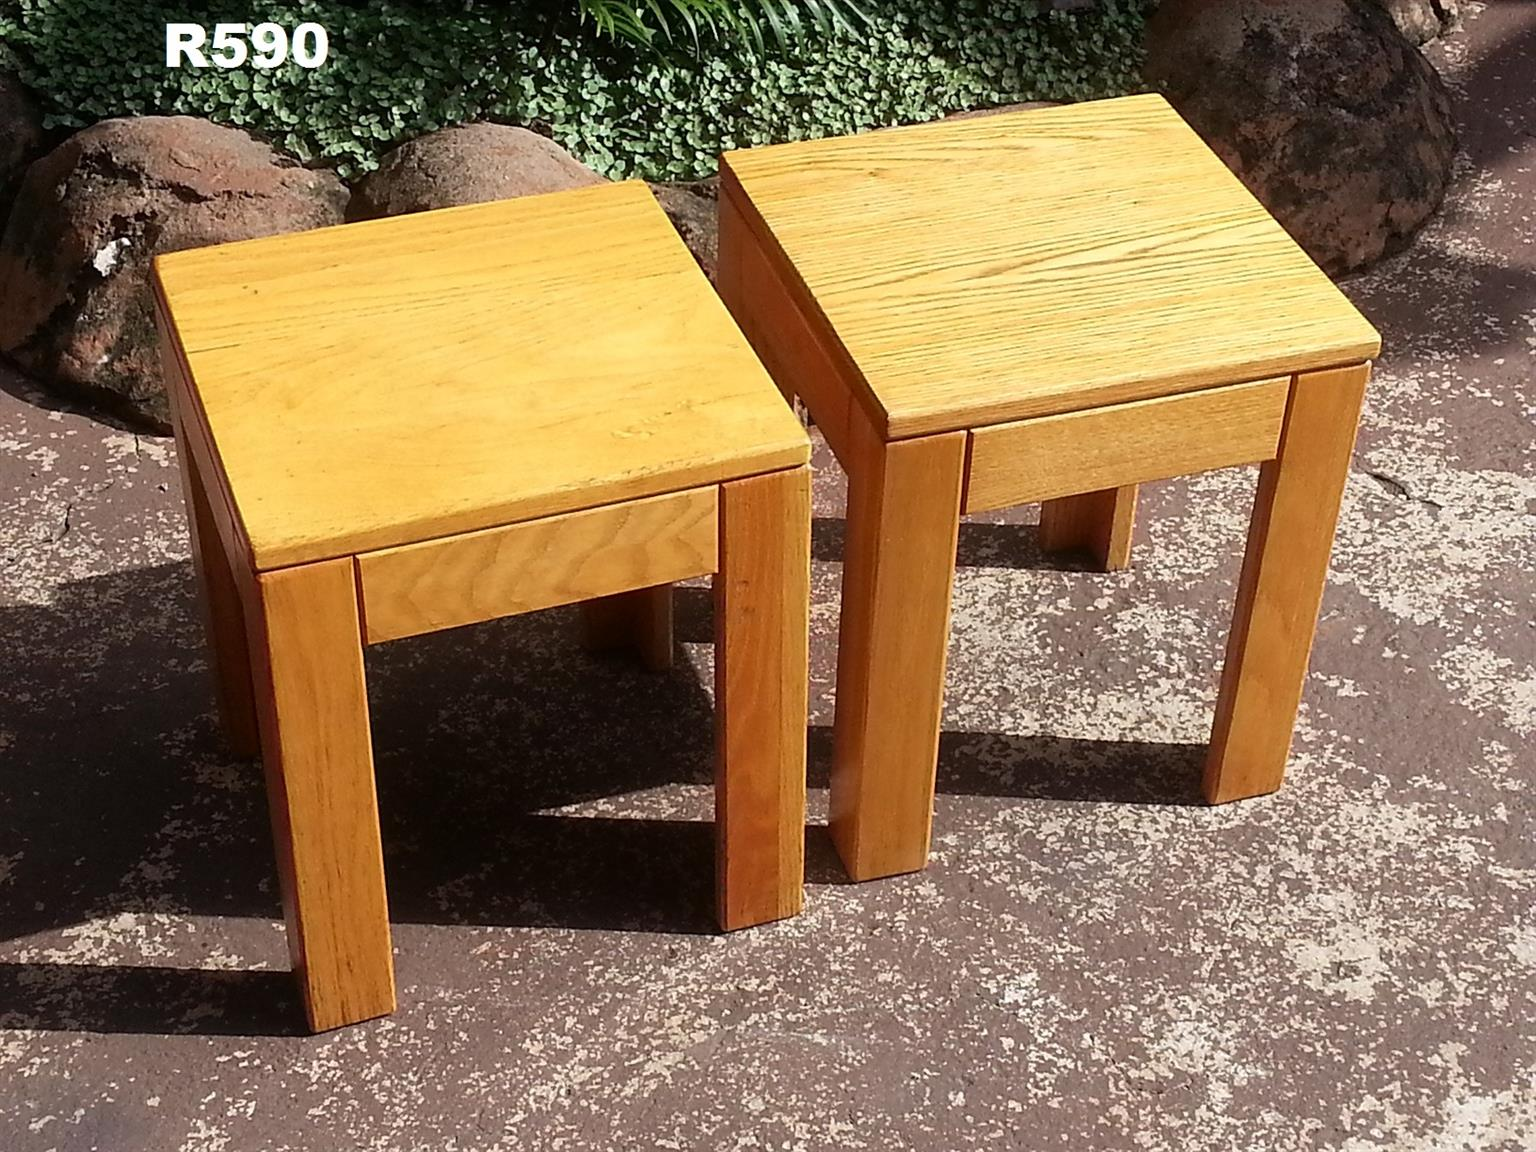 2 x Solid Oak Side Tables (350x350x410)